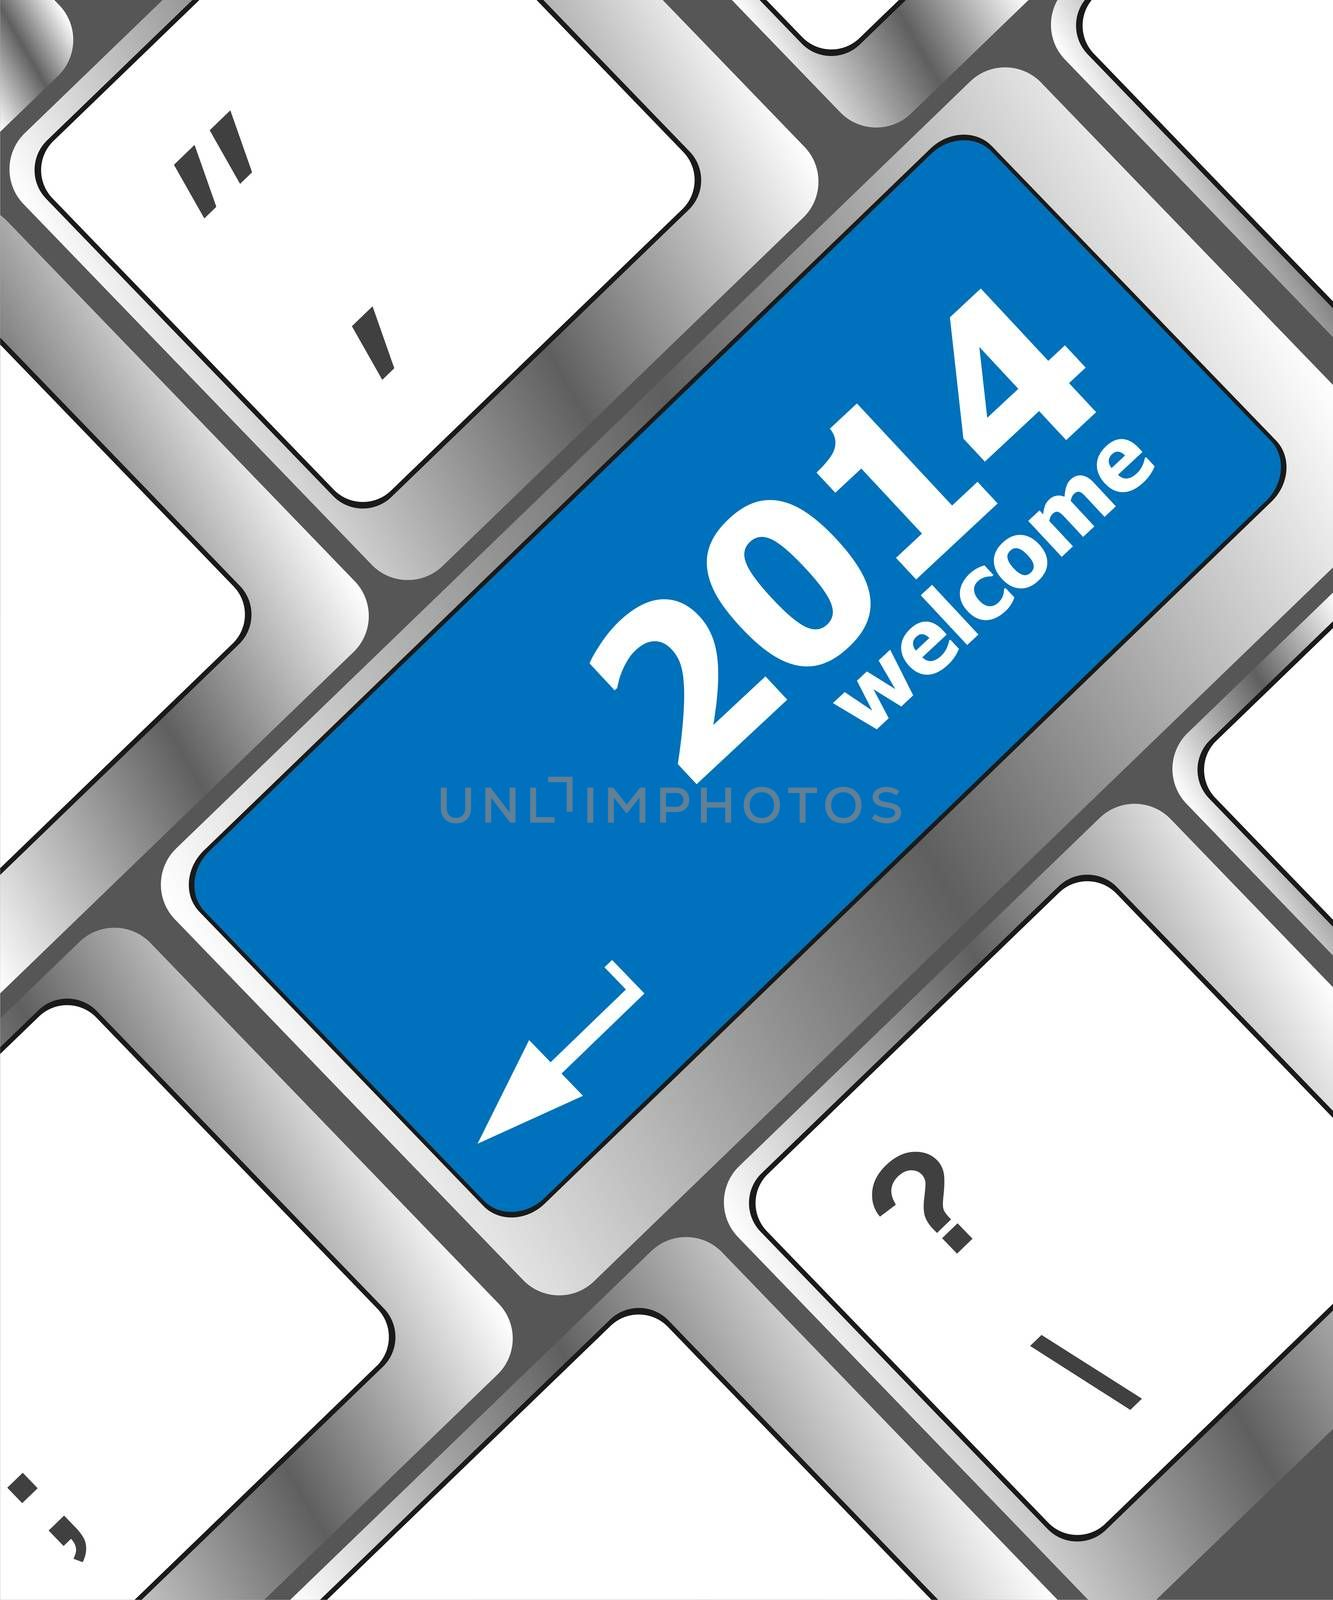 New year concept: welcome 2014 key on the computer keyboard